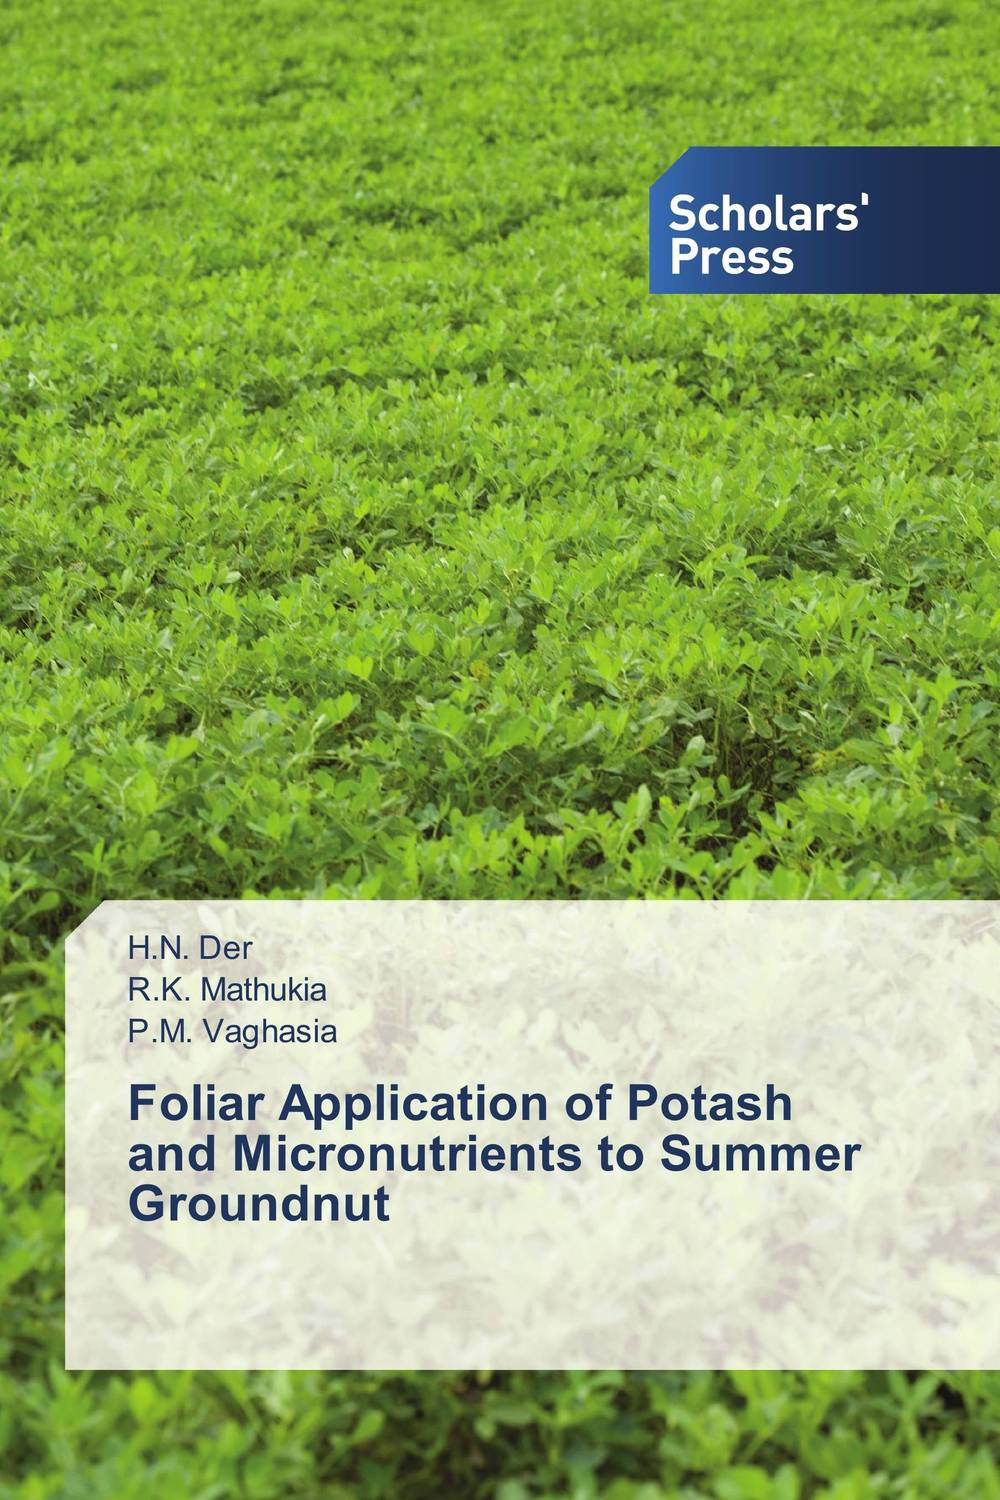 Foliar Application of Potash and Micronutrients to Summer Groundnut h n gour pankaj sharma and rakesh kaushal pathological aspects and management of root rot of groundnut